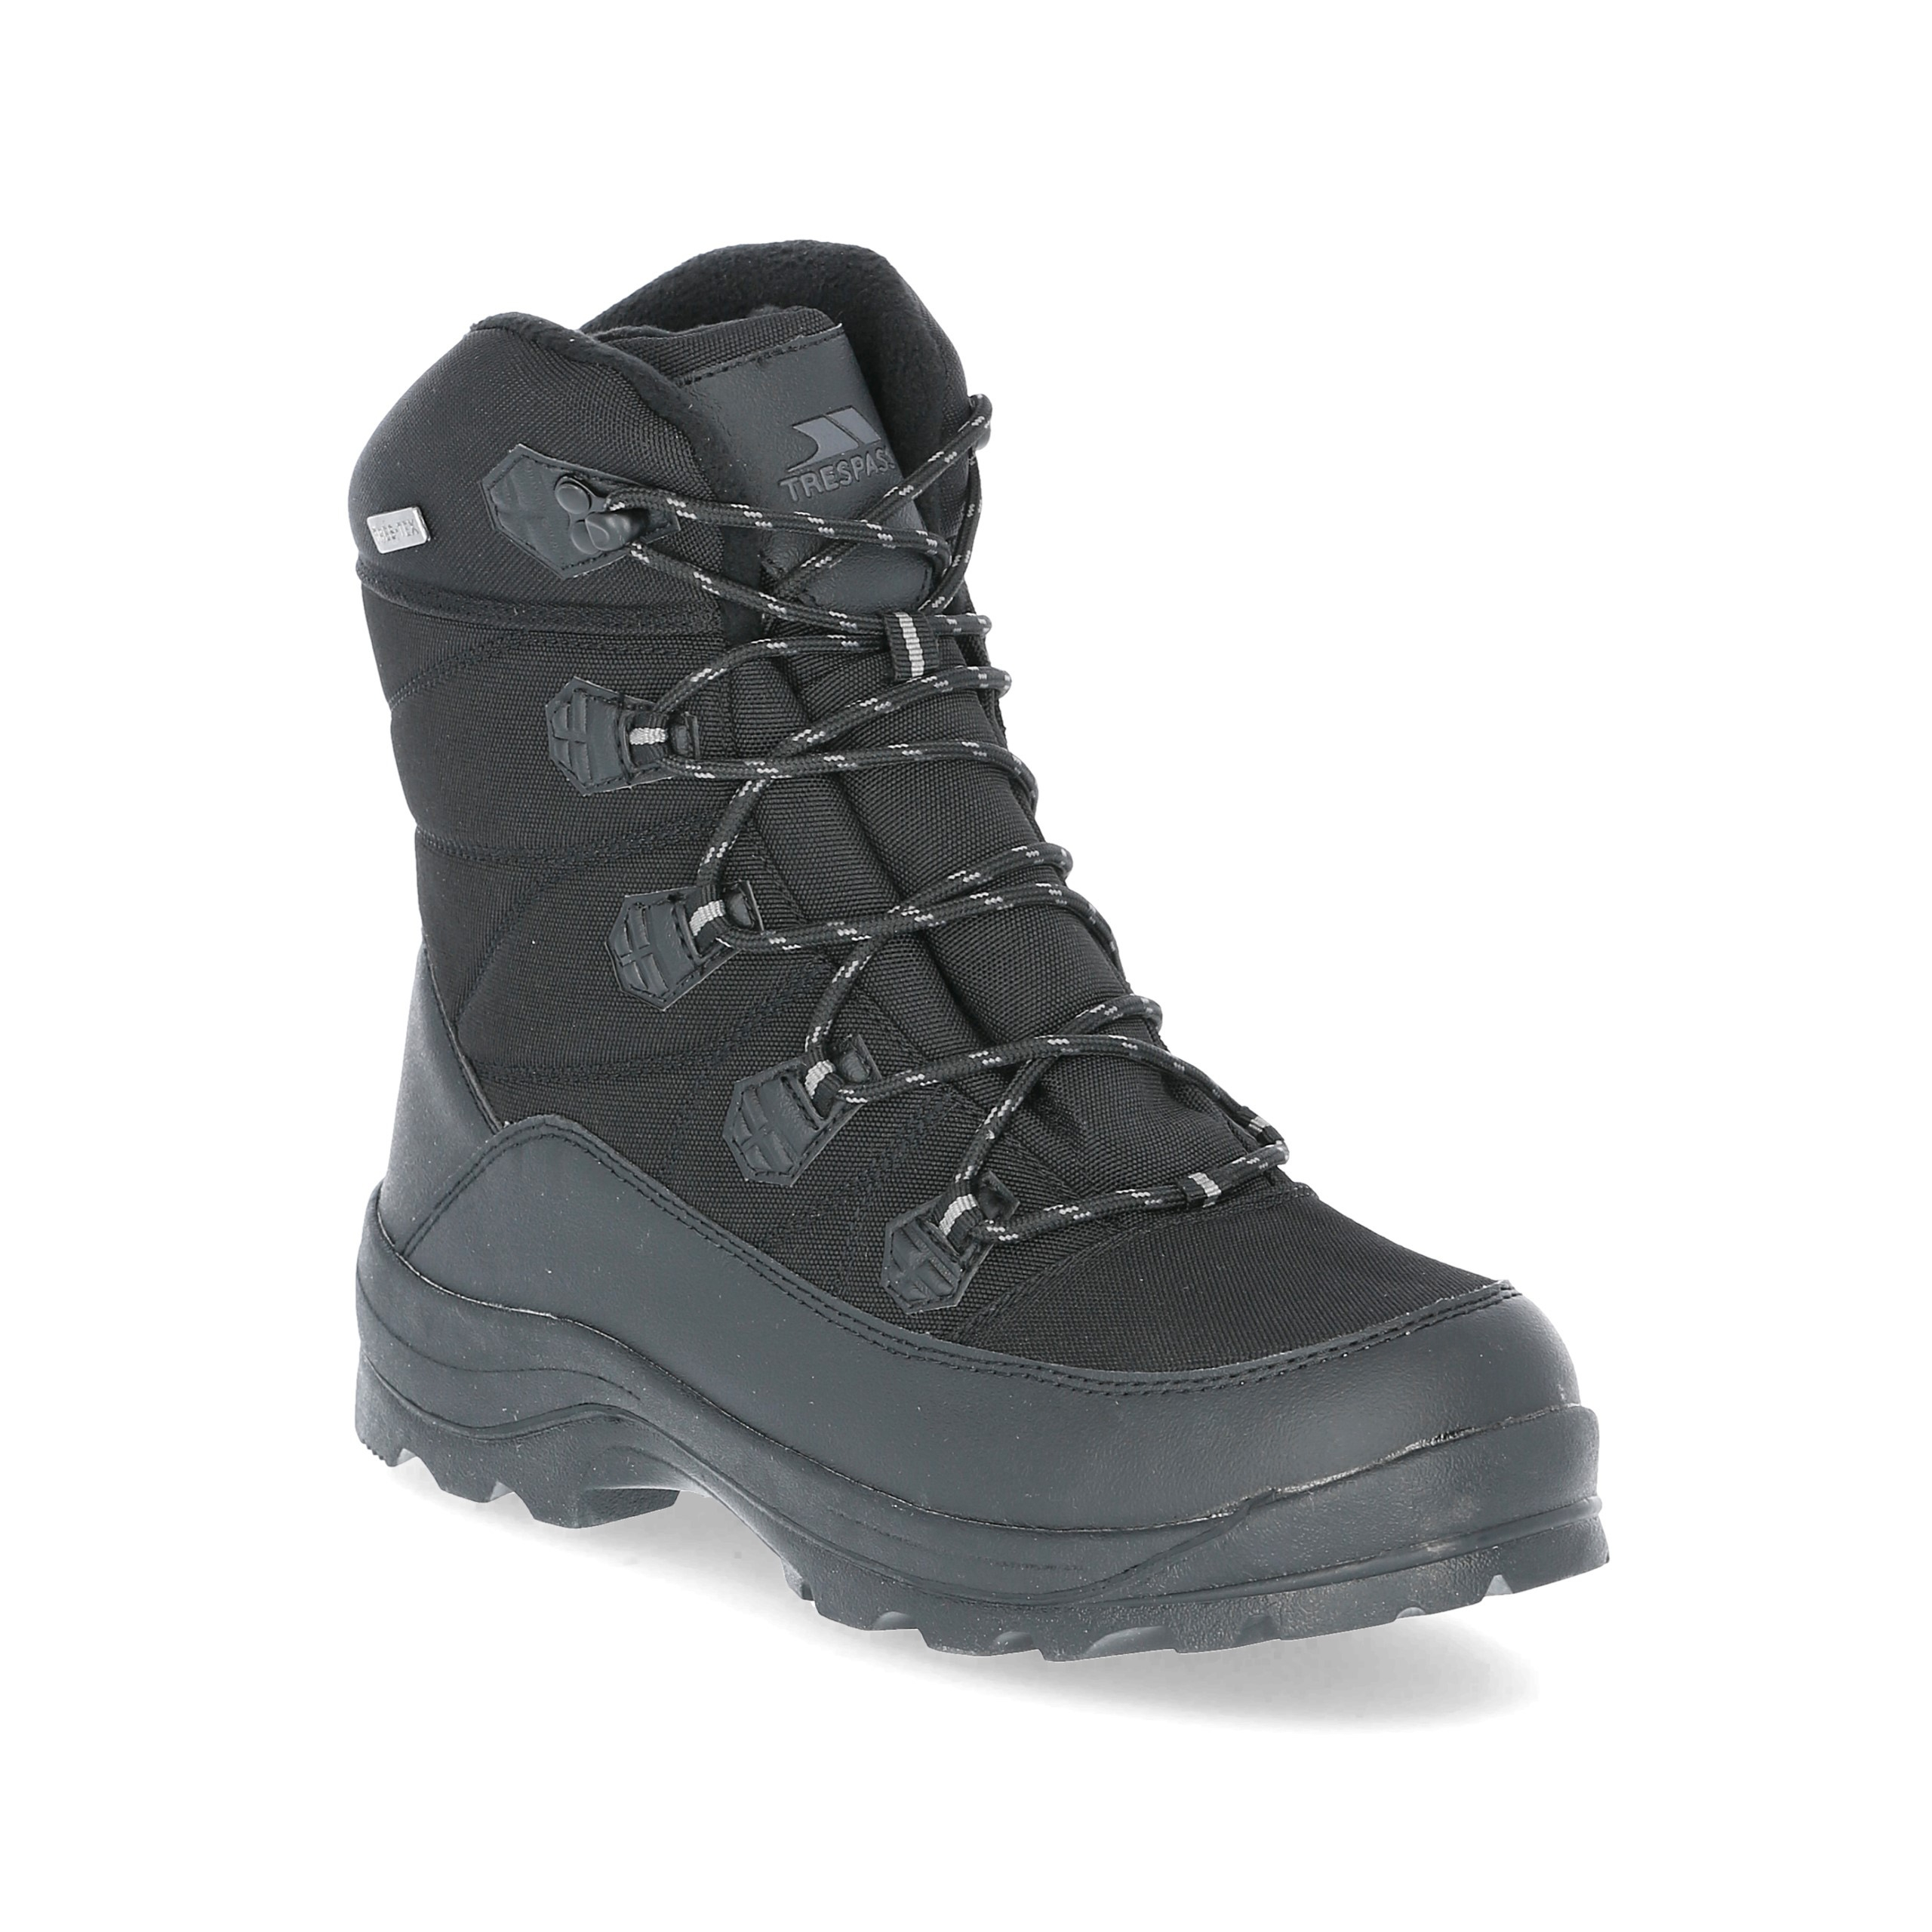 in Trespass Zotos Snow traspirante Blk Boots Waterproof Black da uomo P0qxPFrw